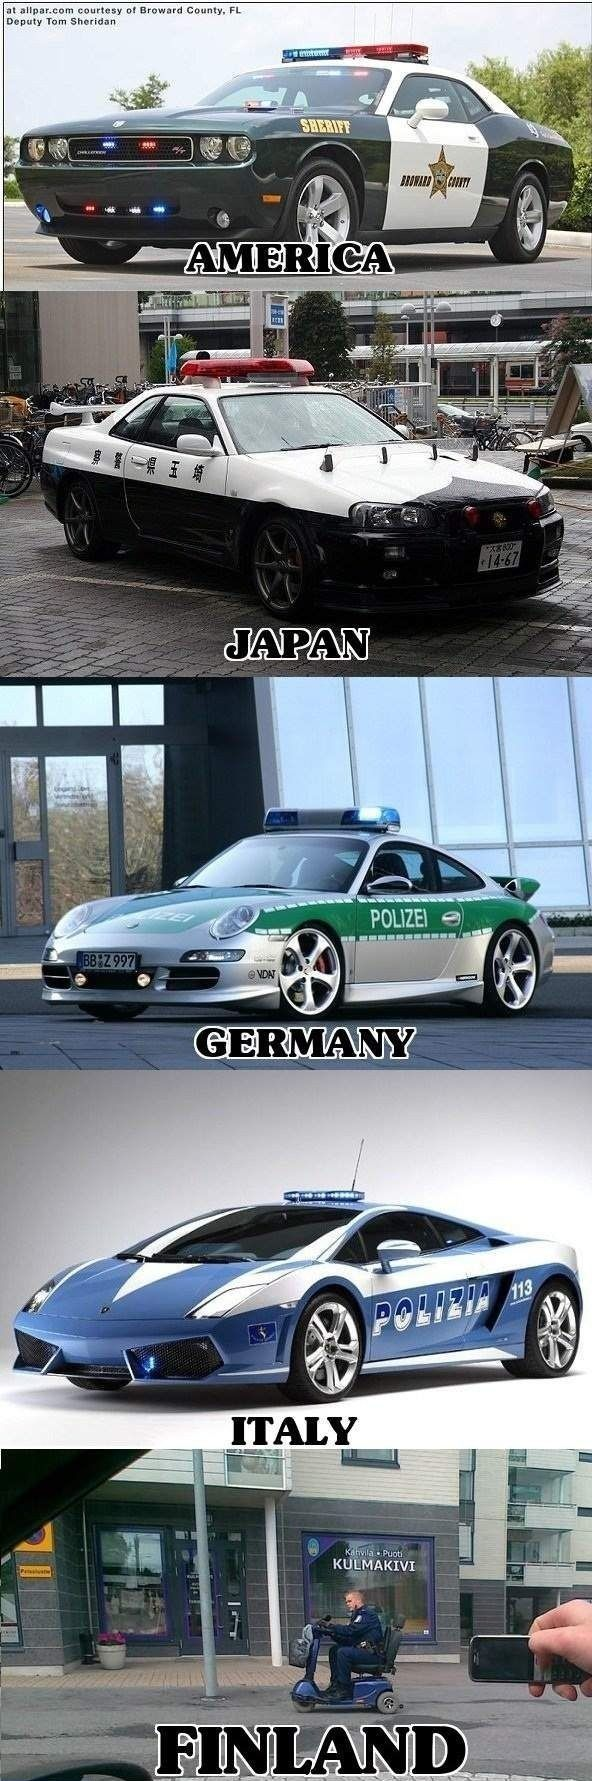 Police car !!! Idk if this is legit, but its funny